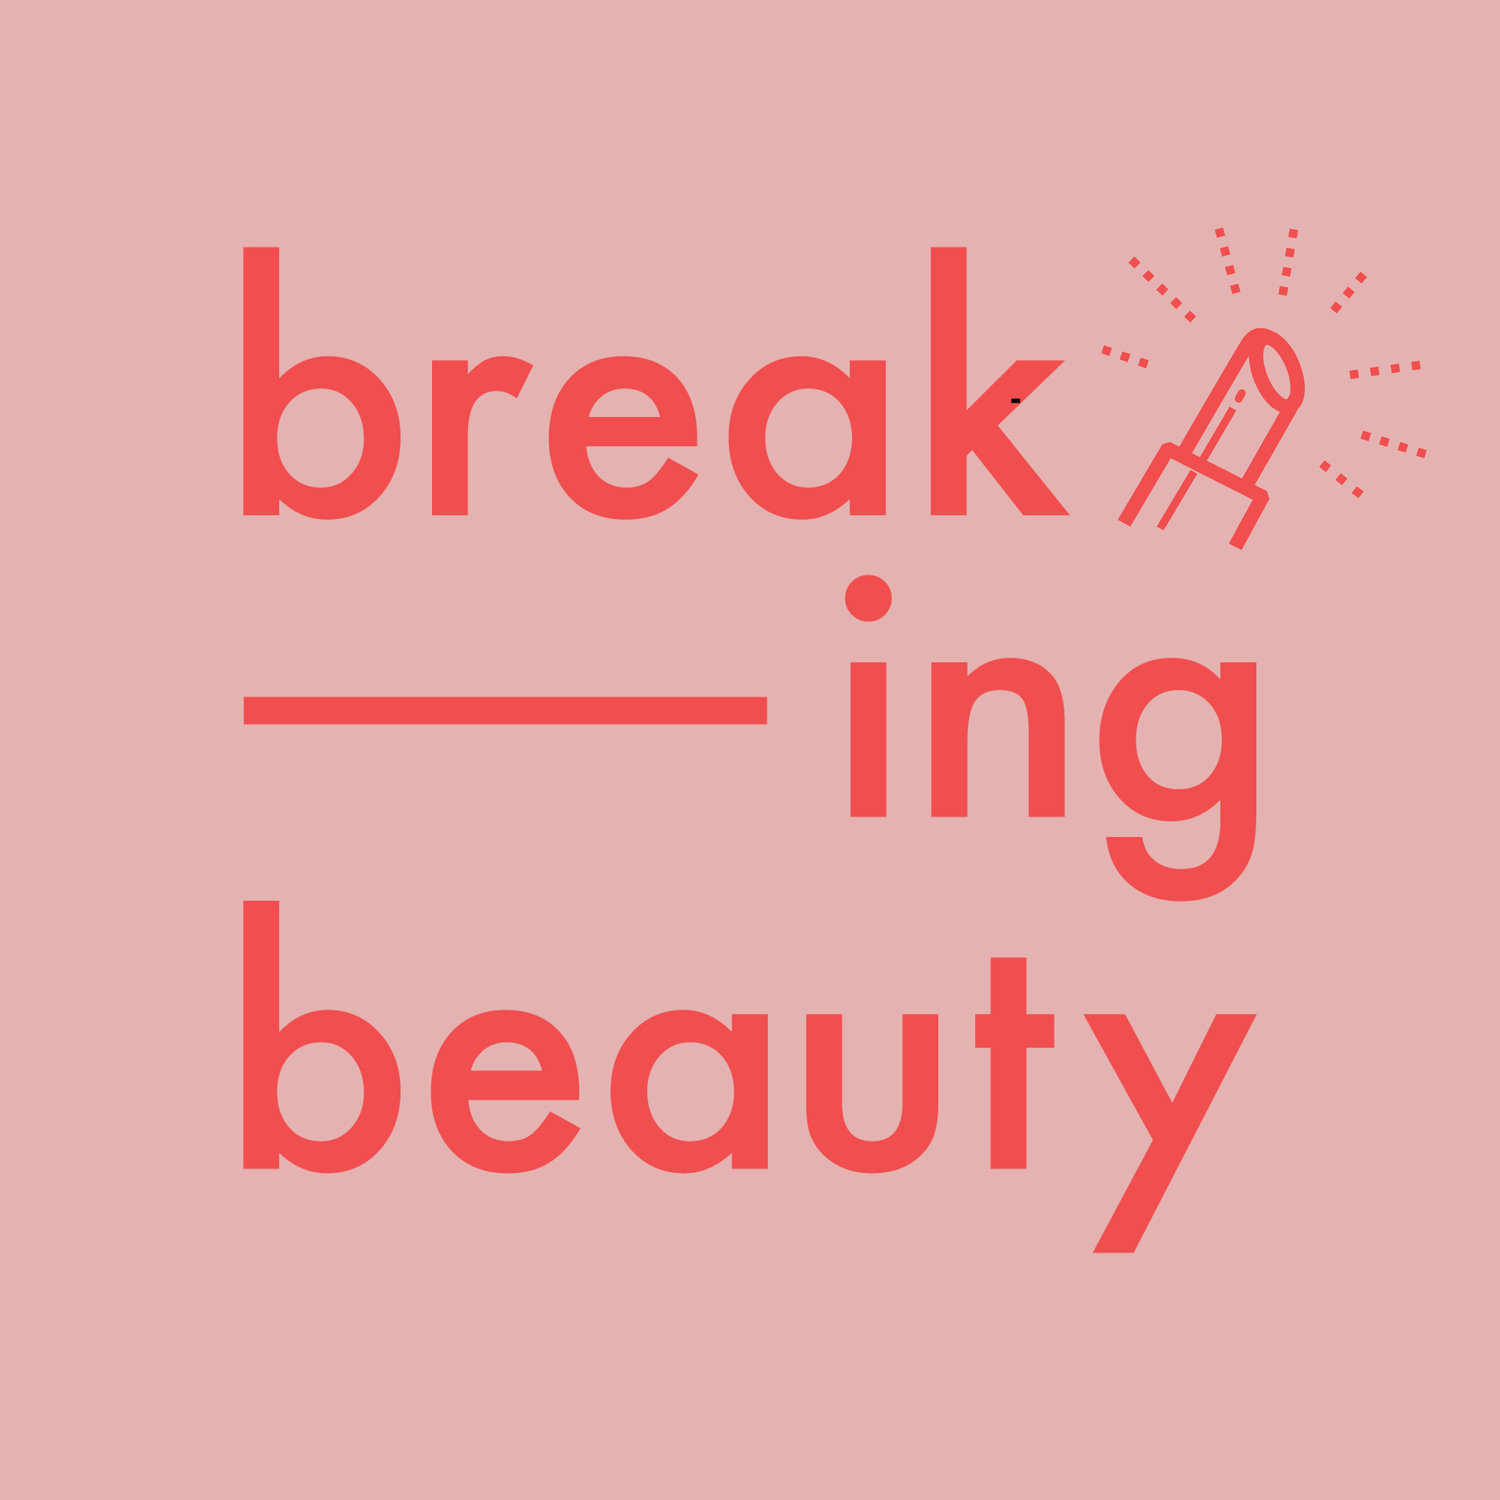 Breaking+beauty+logo+final+